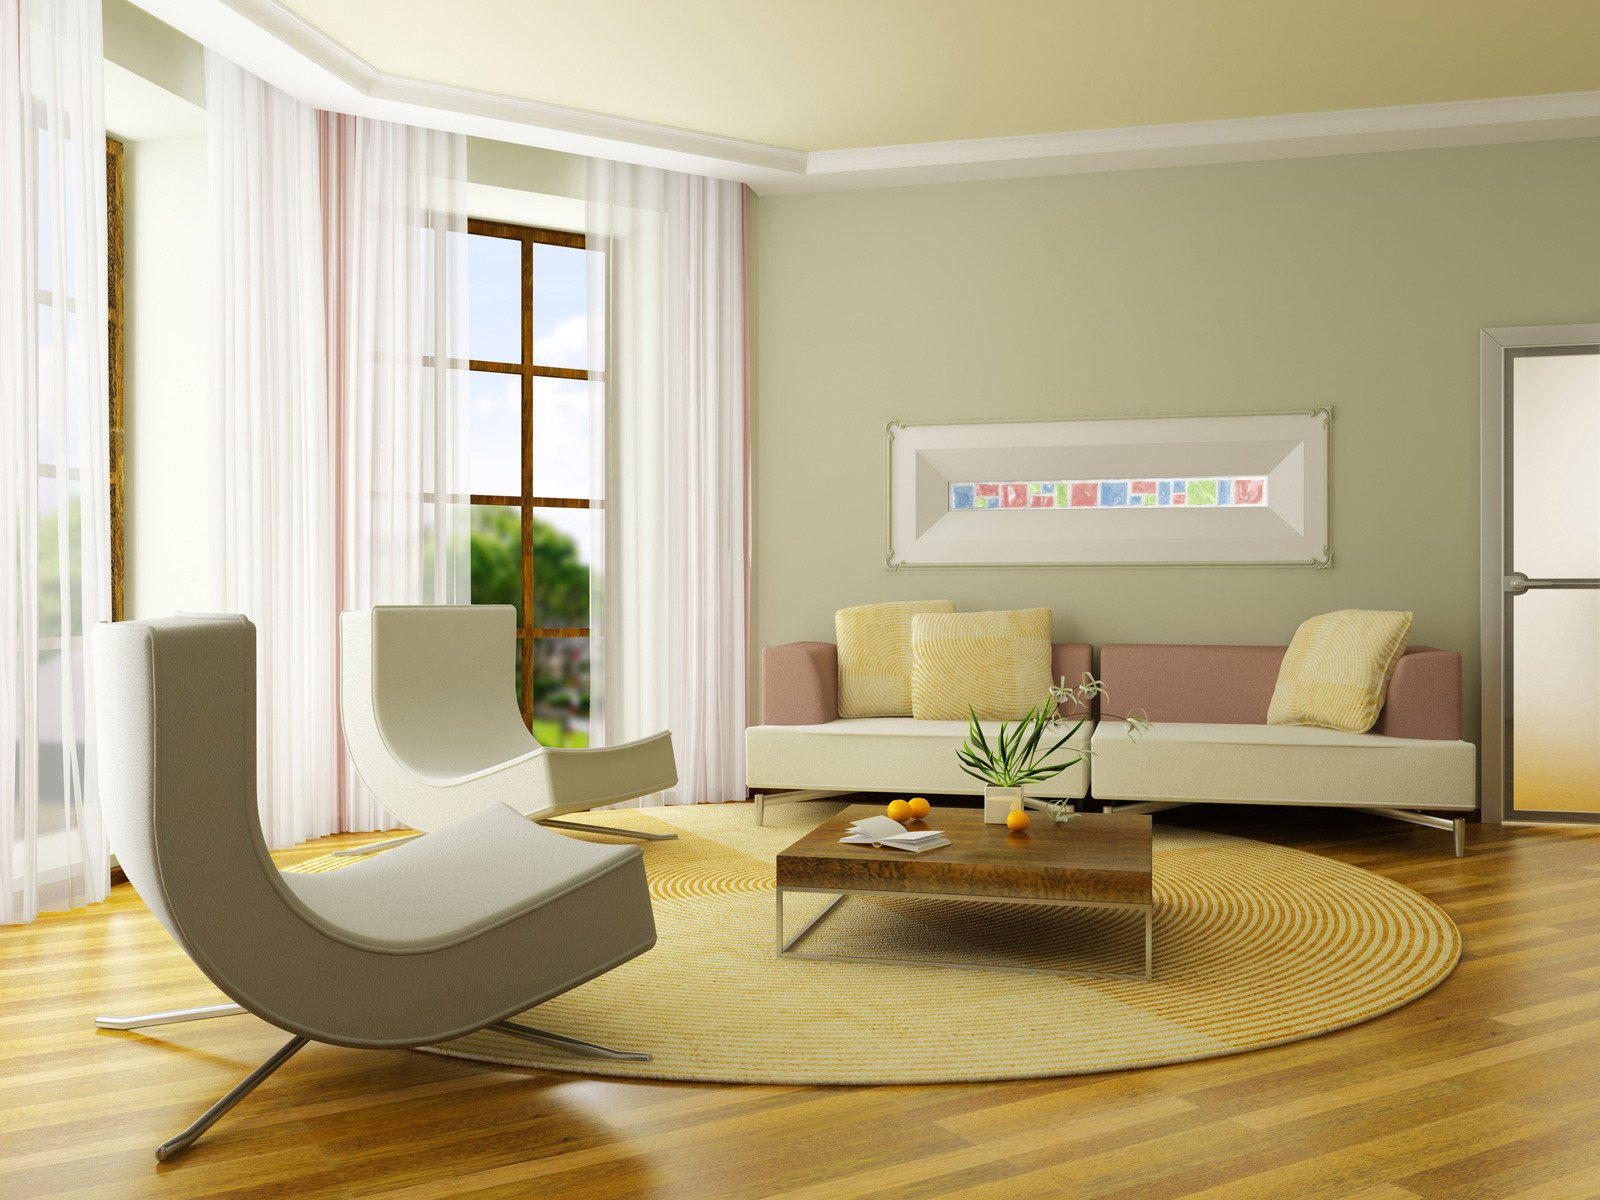 Small Living Room Paint Ideas Luxury Paint Ideas for Living Room with Narrow Space theydesign theydesign